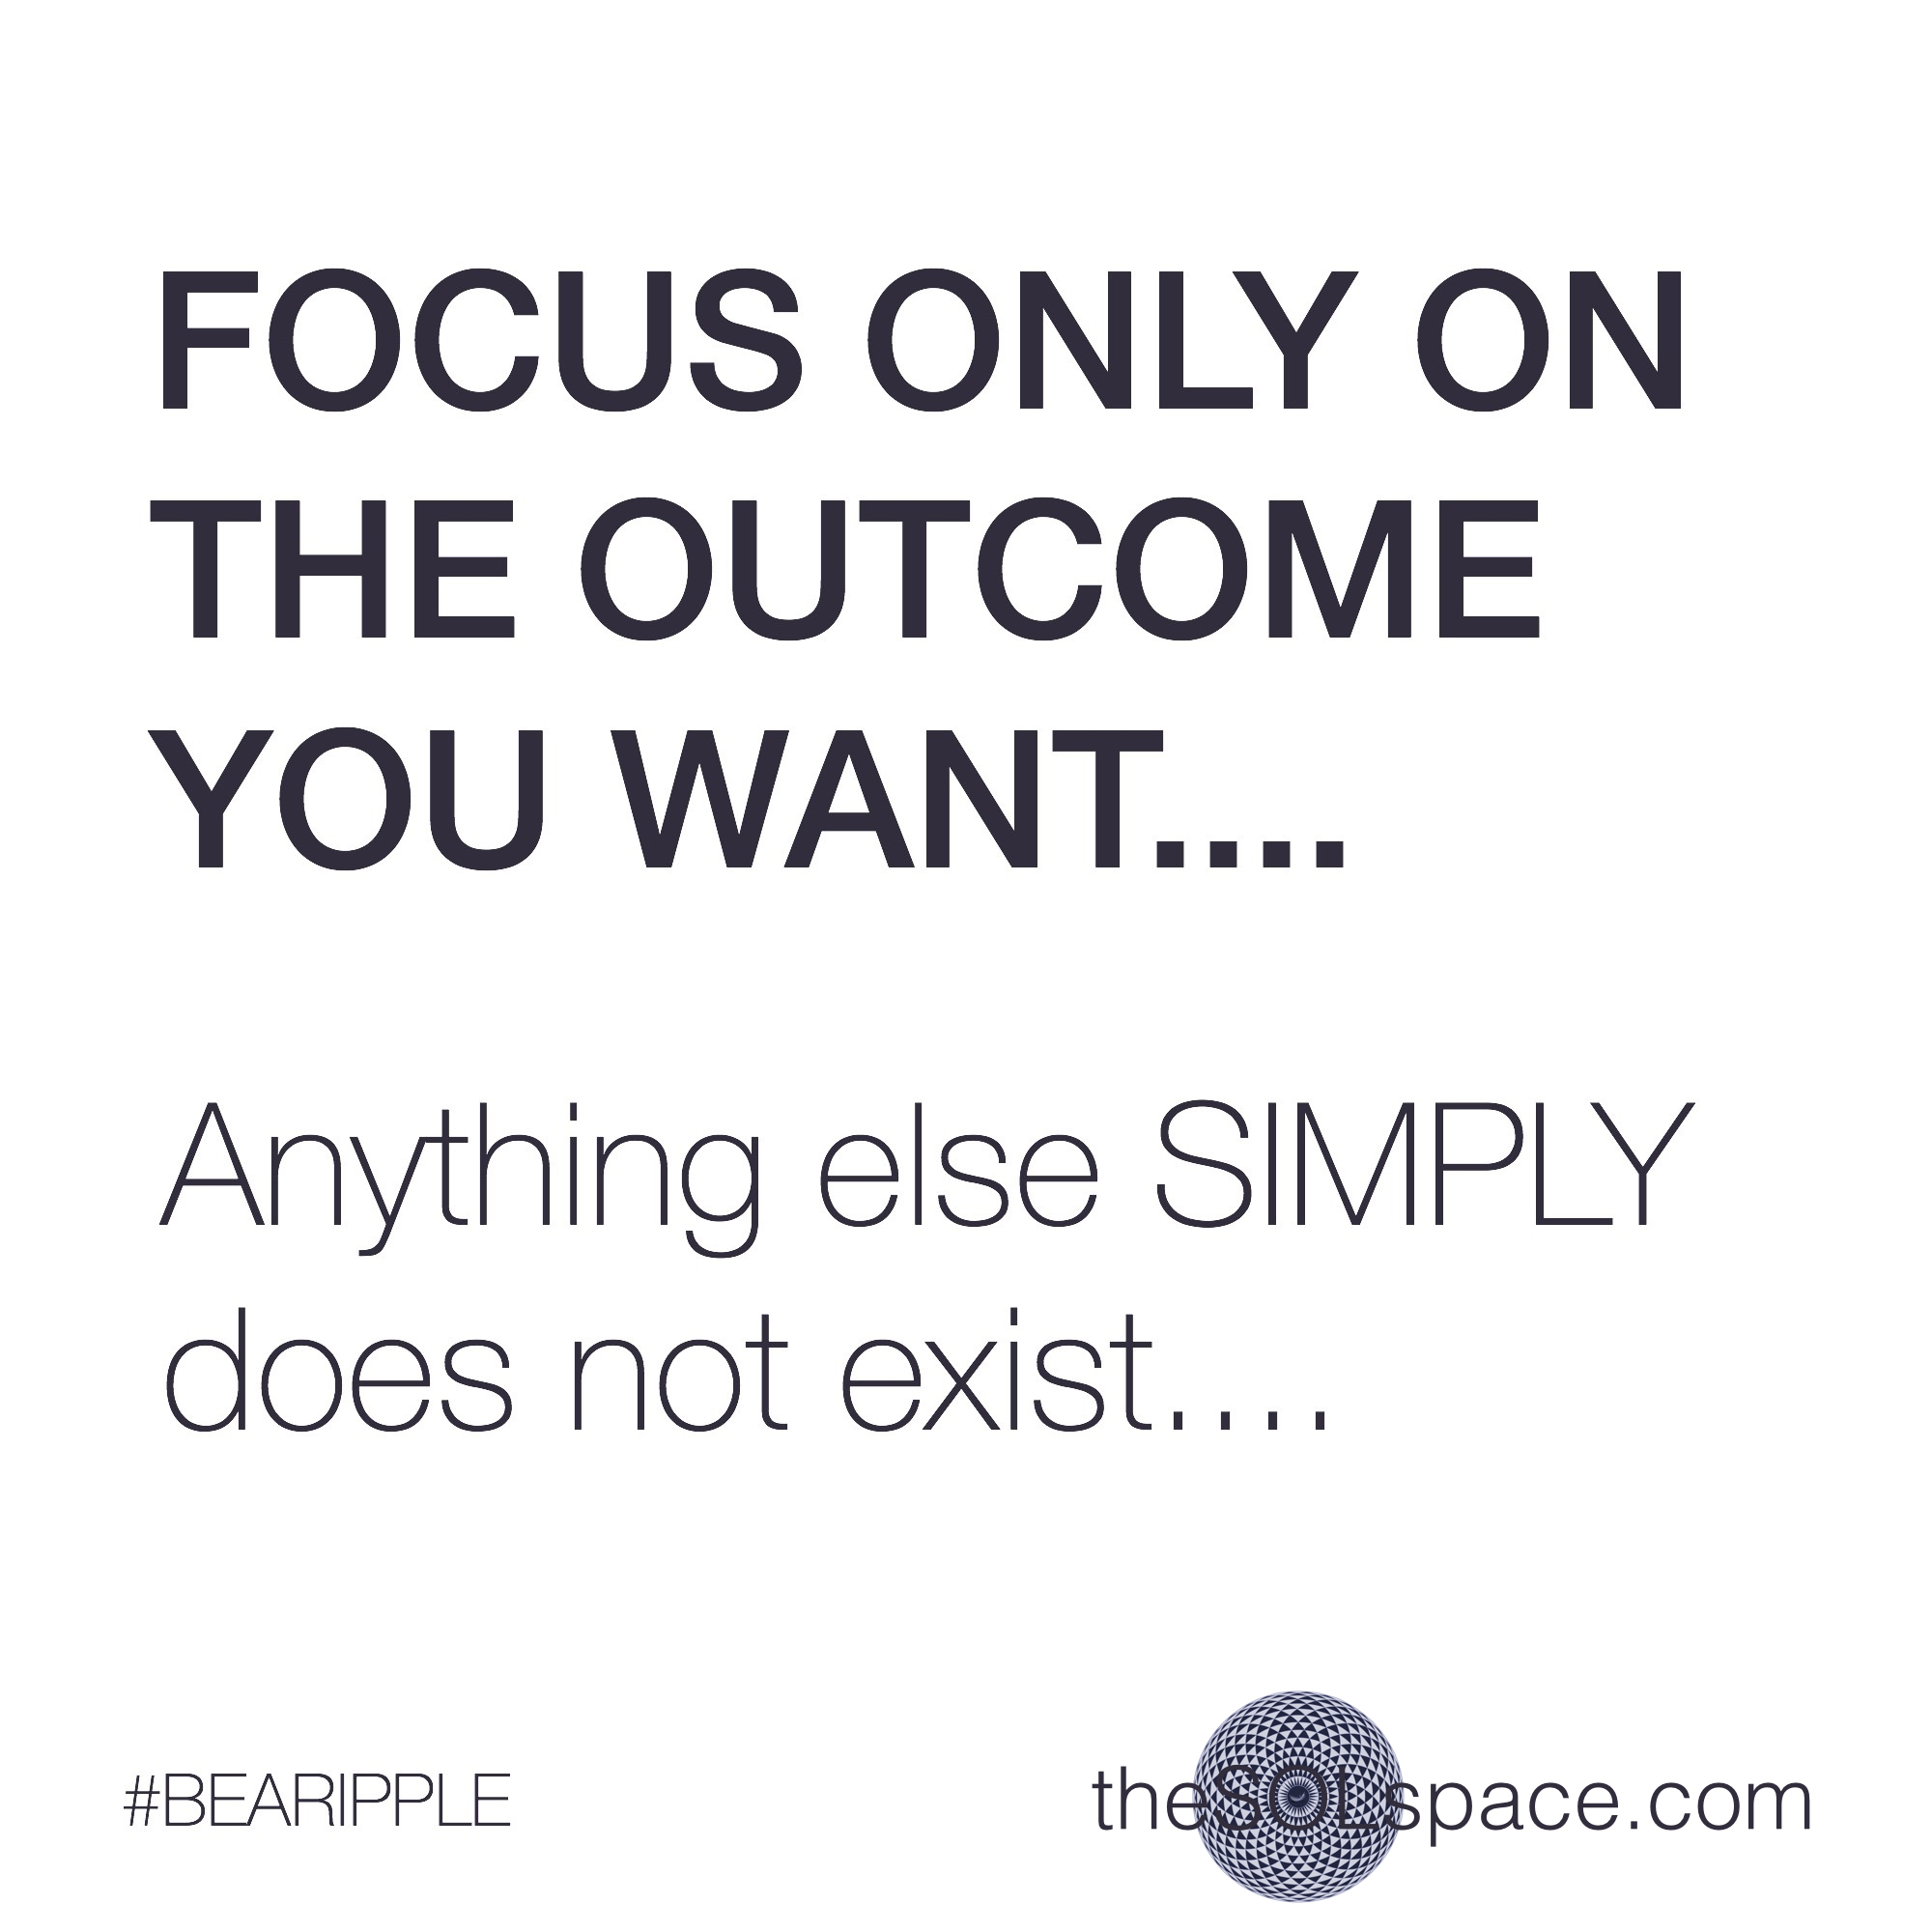 #BeARipple..focus only on the outcome..anything else simply does not exist @theSOLspace